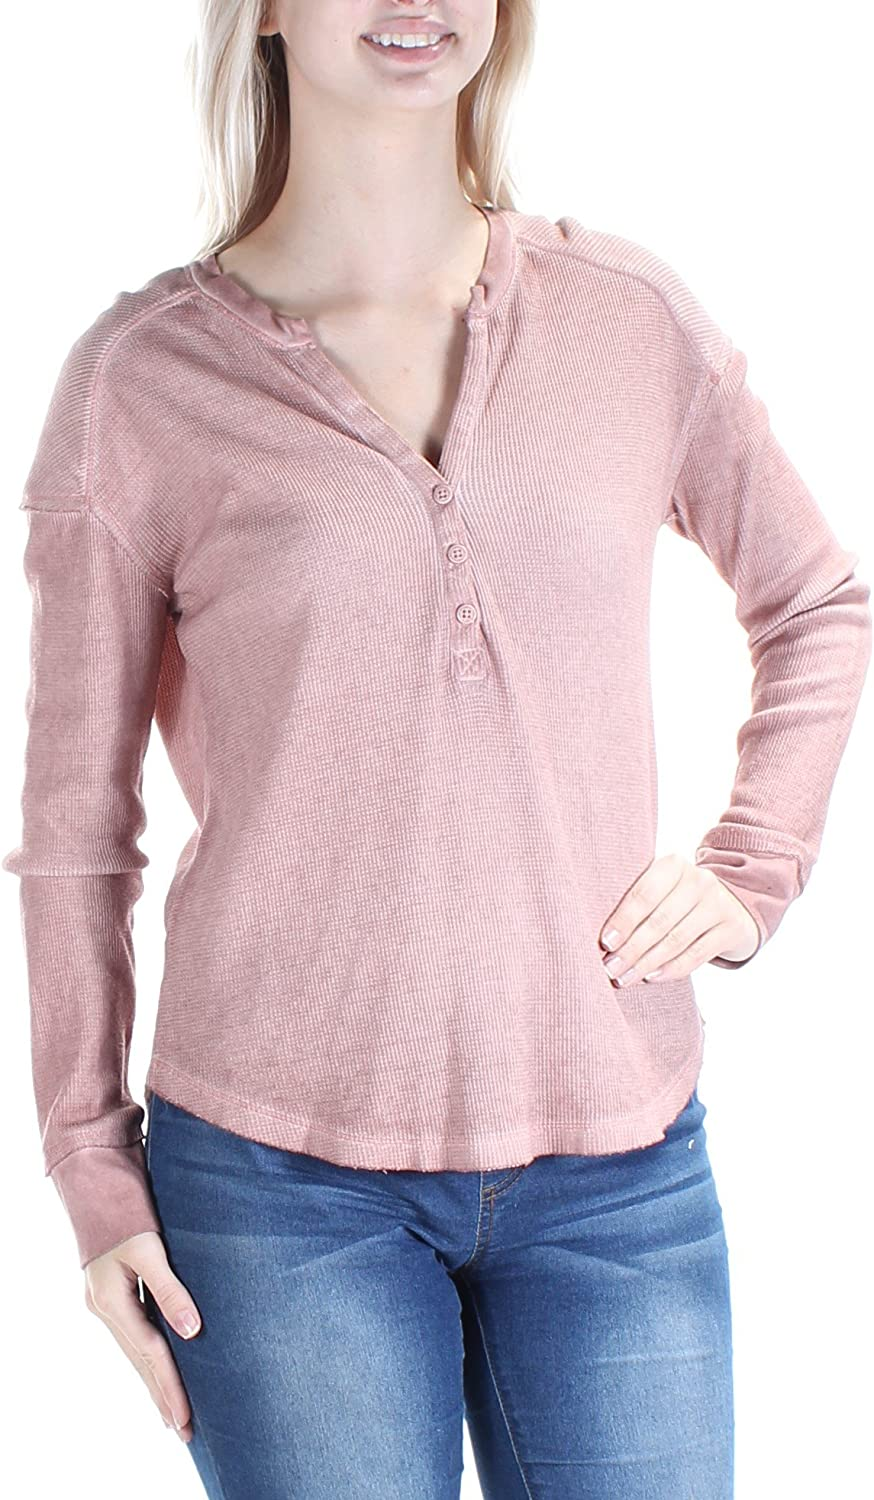 98c053086f9 Sanctuary Womens Waffle Knit Sleeve Henley Top S Long Taupe ...